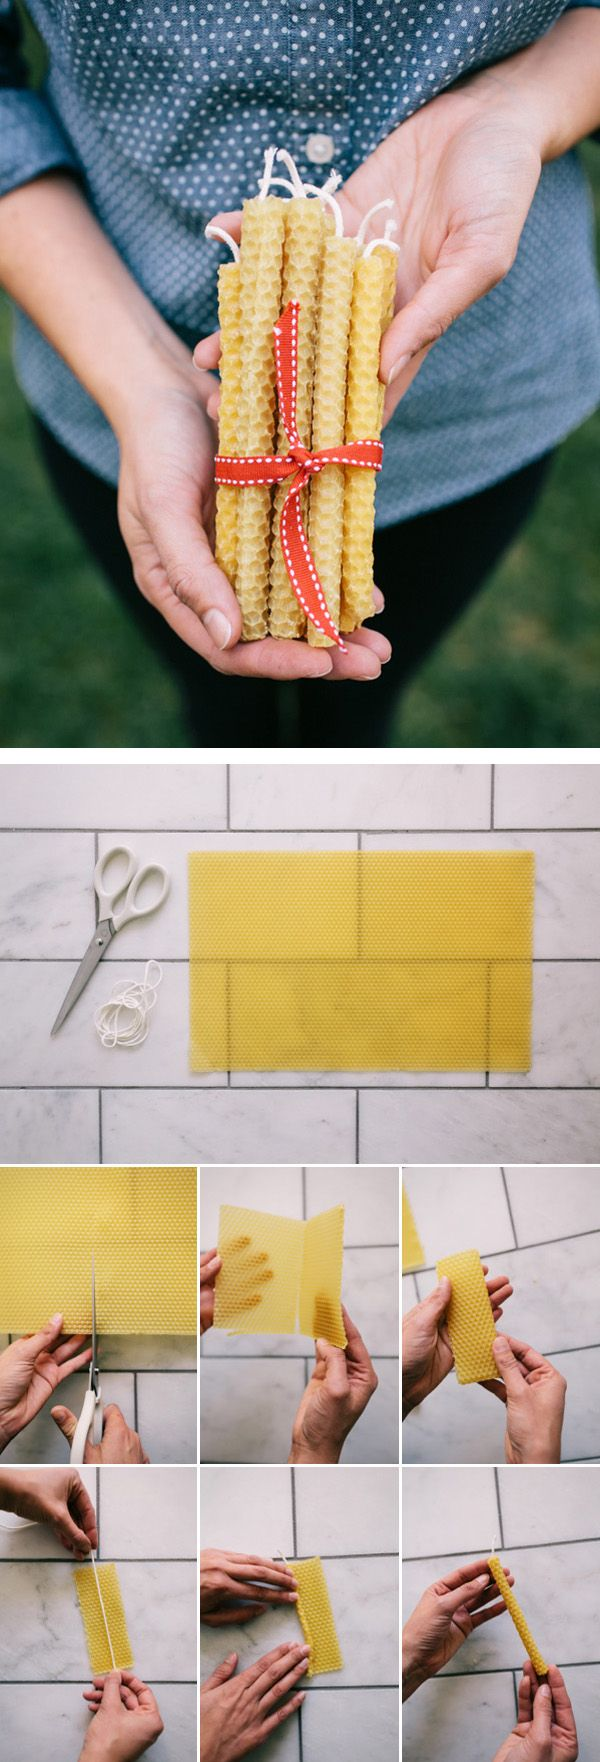 DIY Beeswax Candle - homemade mother's day gift